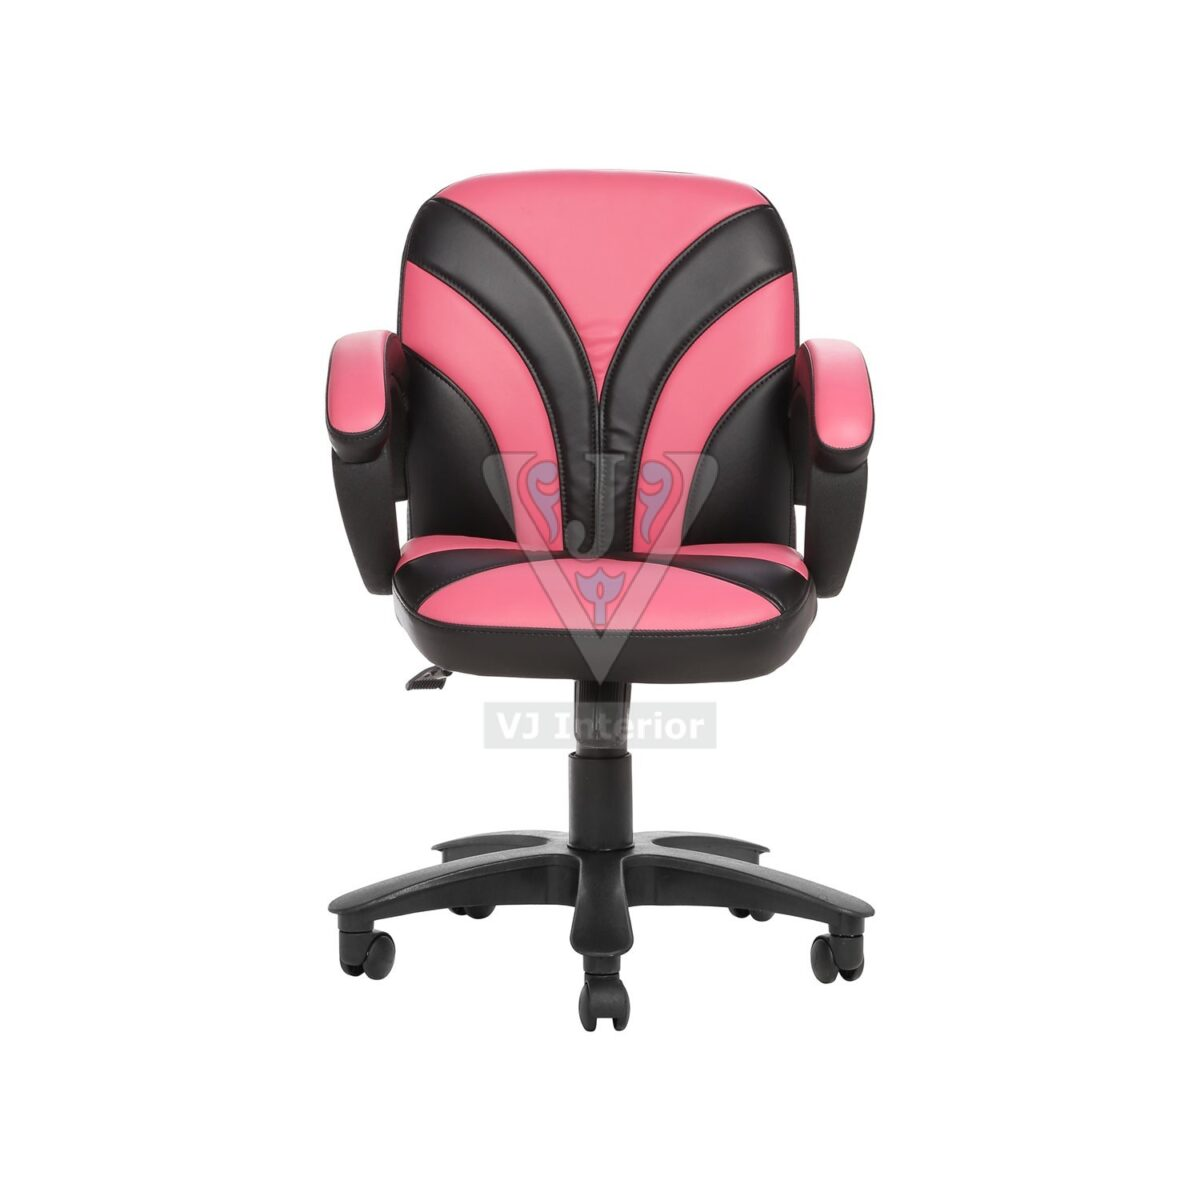 THE FUENTE LB WORKSTAION CHAIR PINK AND BLACK